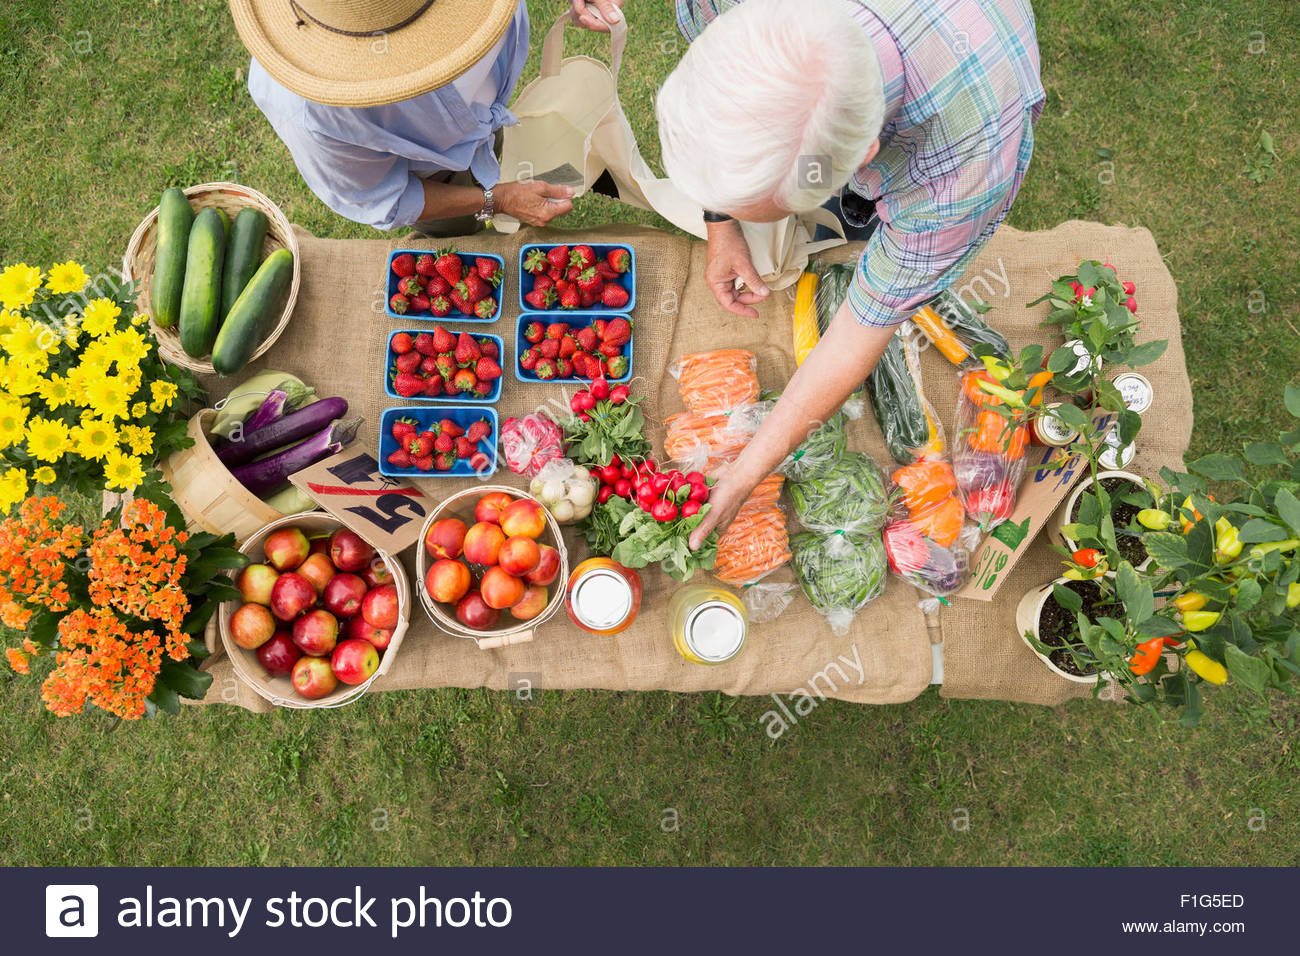 Shoppers reaching produce on farmers market display table - Stock Image